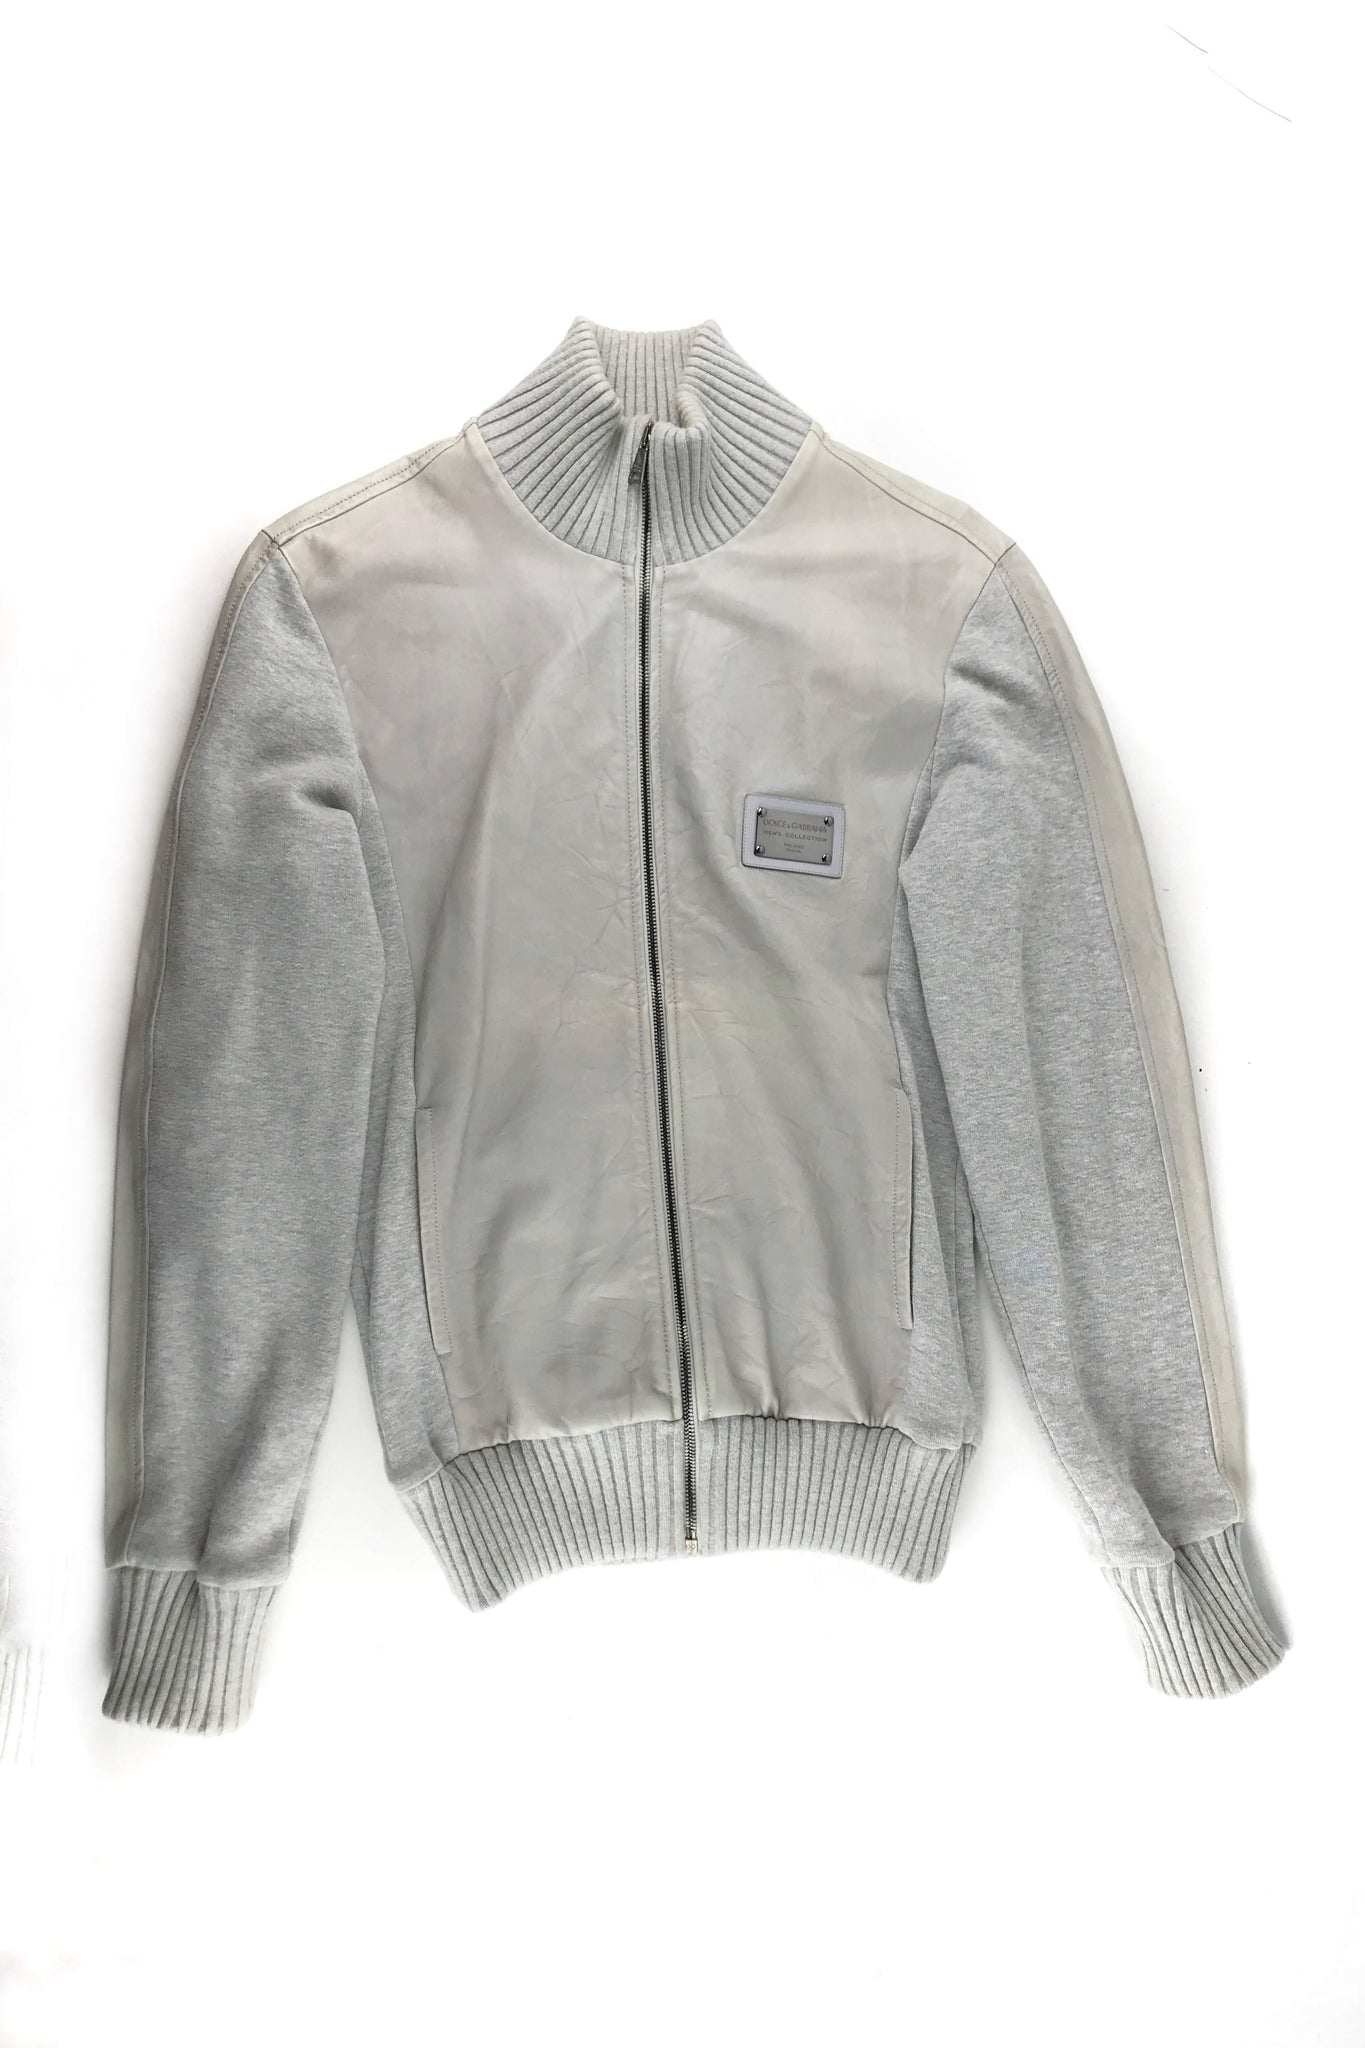 DOLCE & GABBANA Grey Zip Men's Sweater W/Accent Side Panel Leather